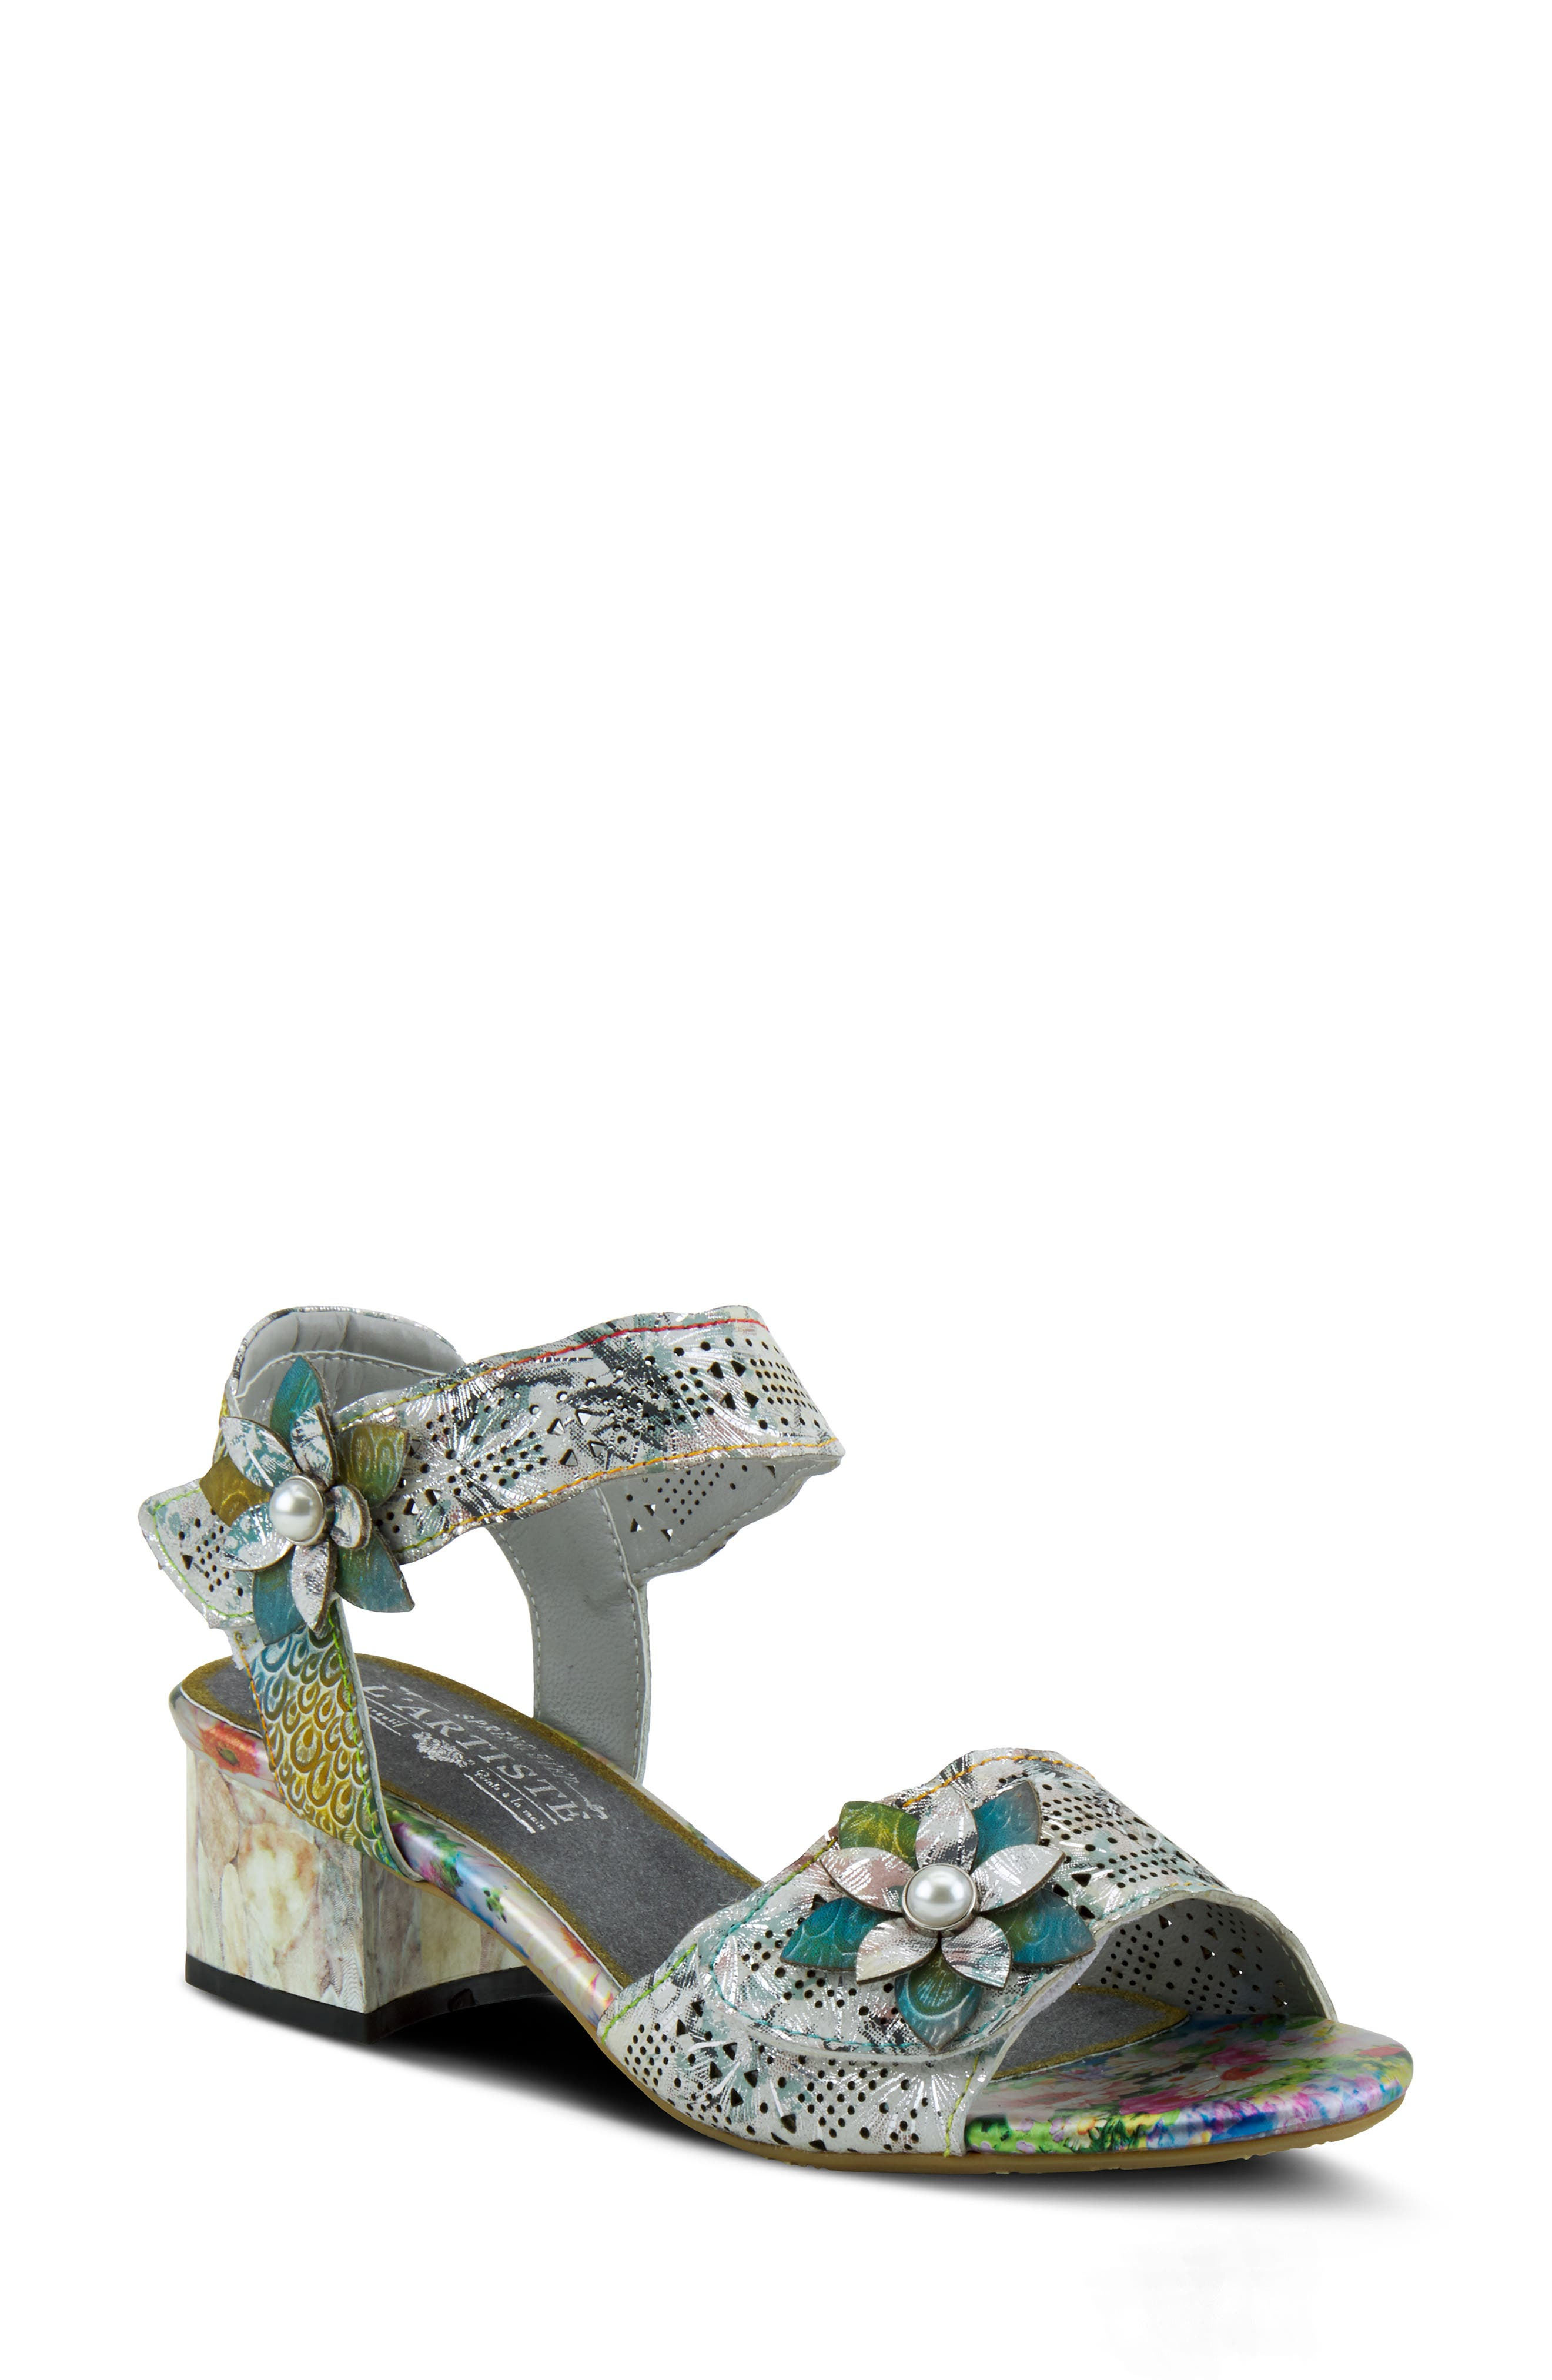 Pearly beads center the flower appliques of a beautifully embossed sandal featuring a bold range of hues. Style Name:L\\\'Artiste Freeform Sandal (Women). Style Number: 6000065. Available in stores.